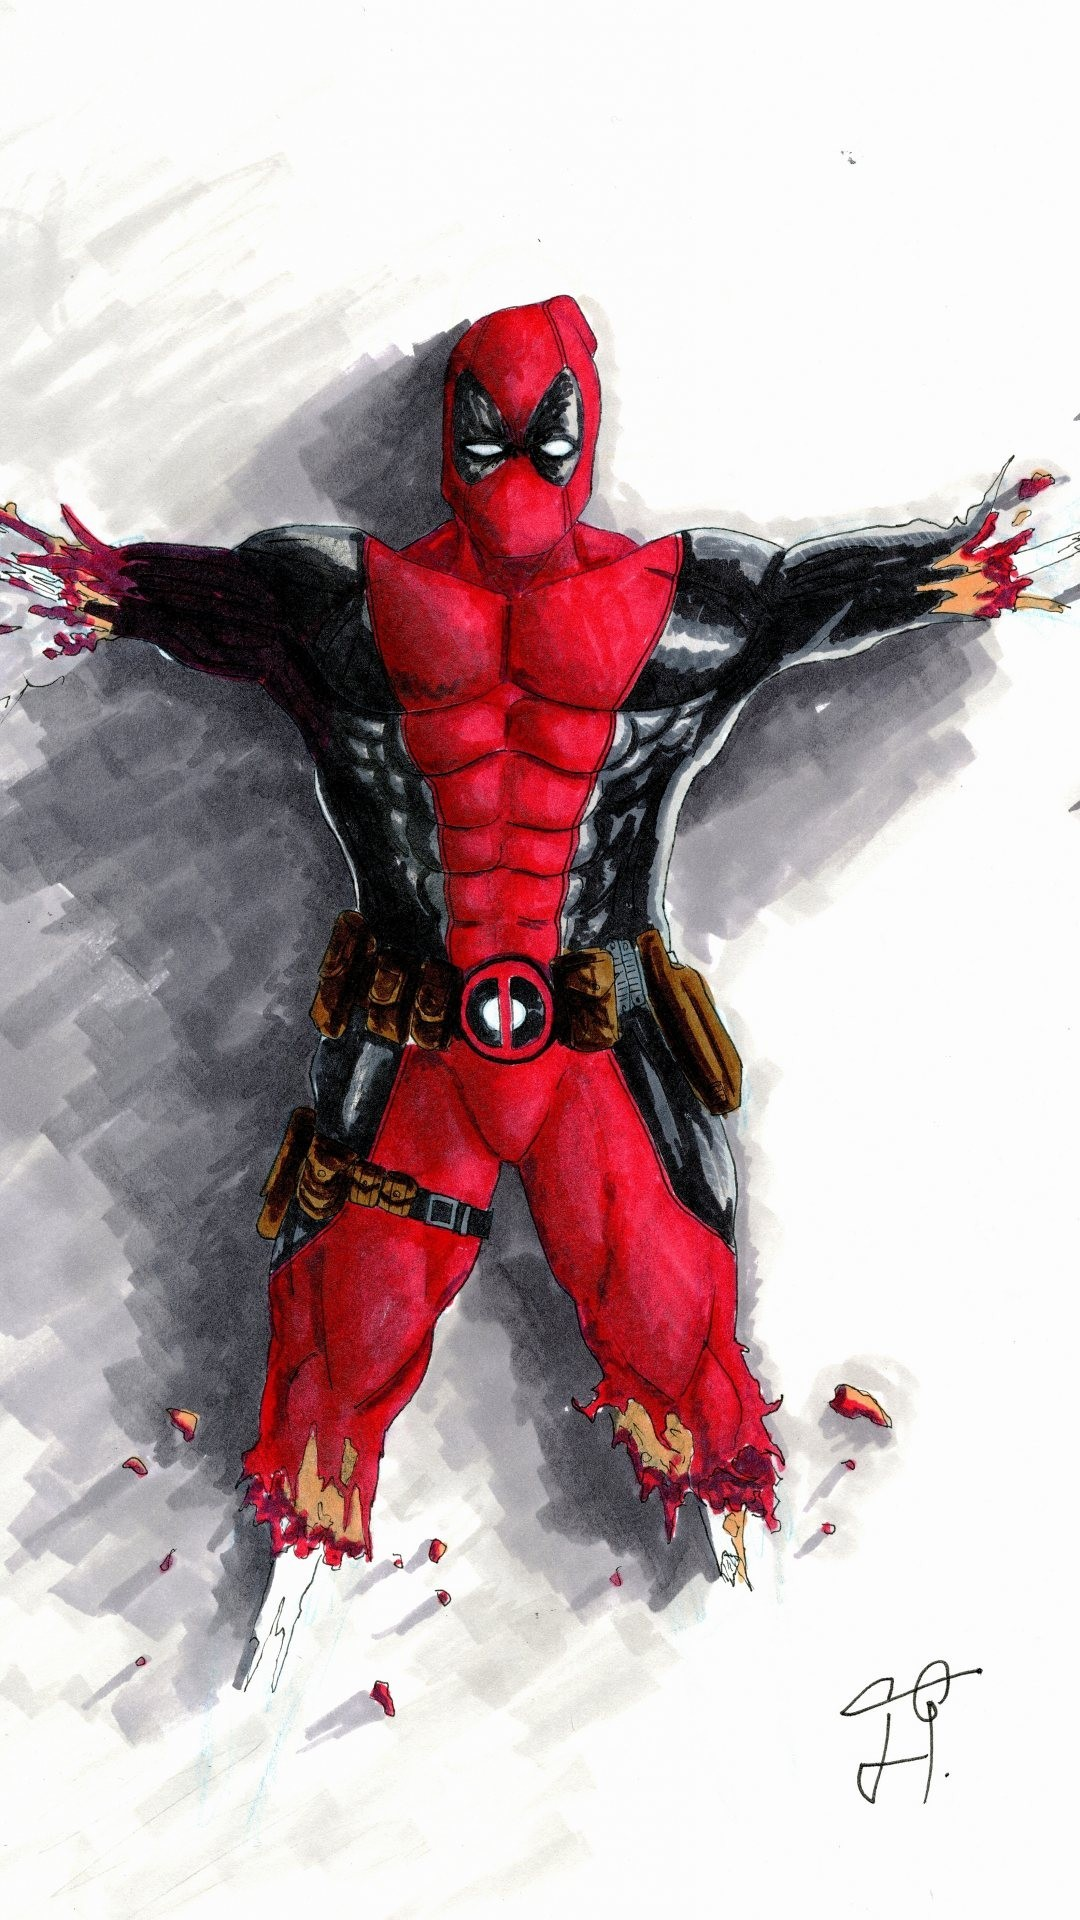 Deadpool Hd Wallpaper Iphone Posted By Zoey Johnson